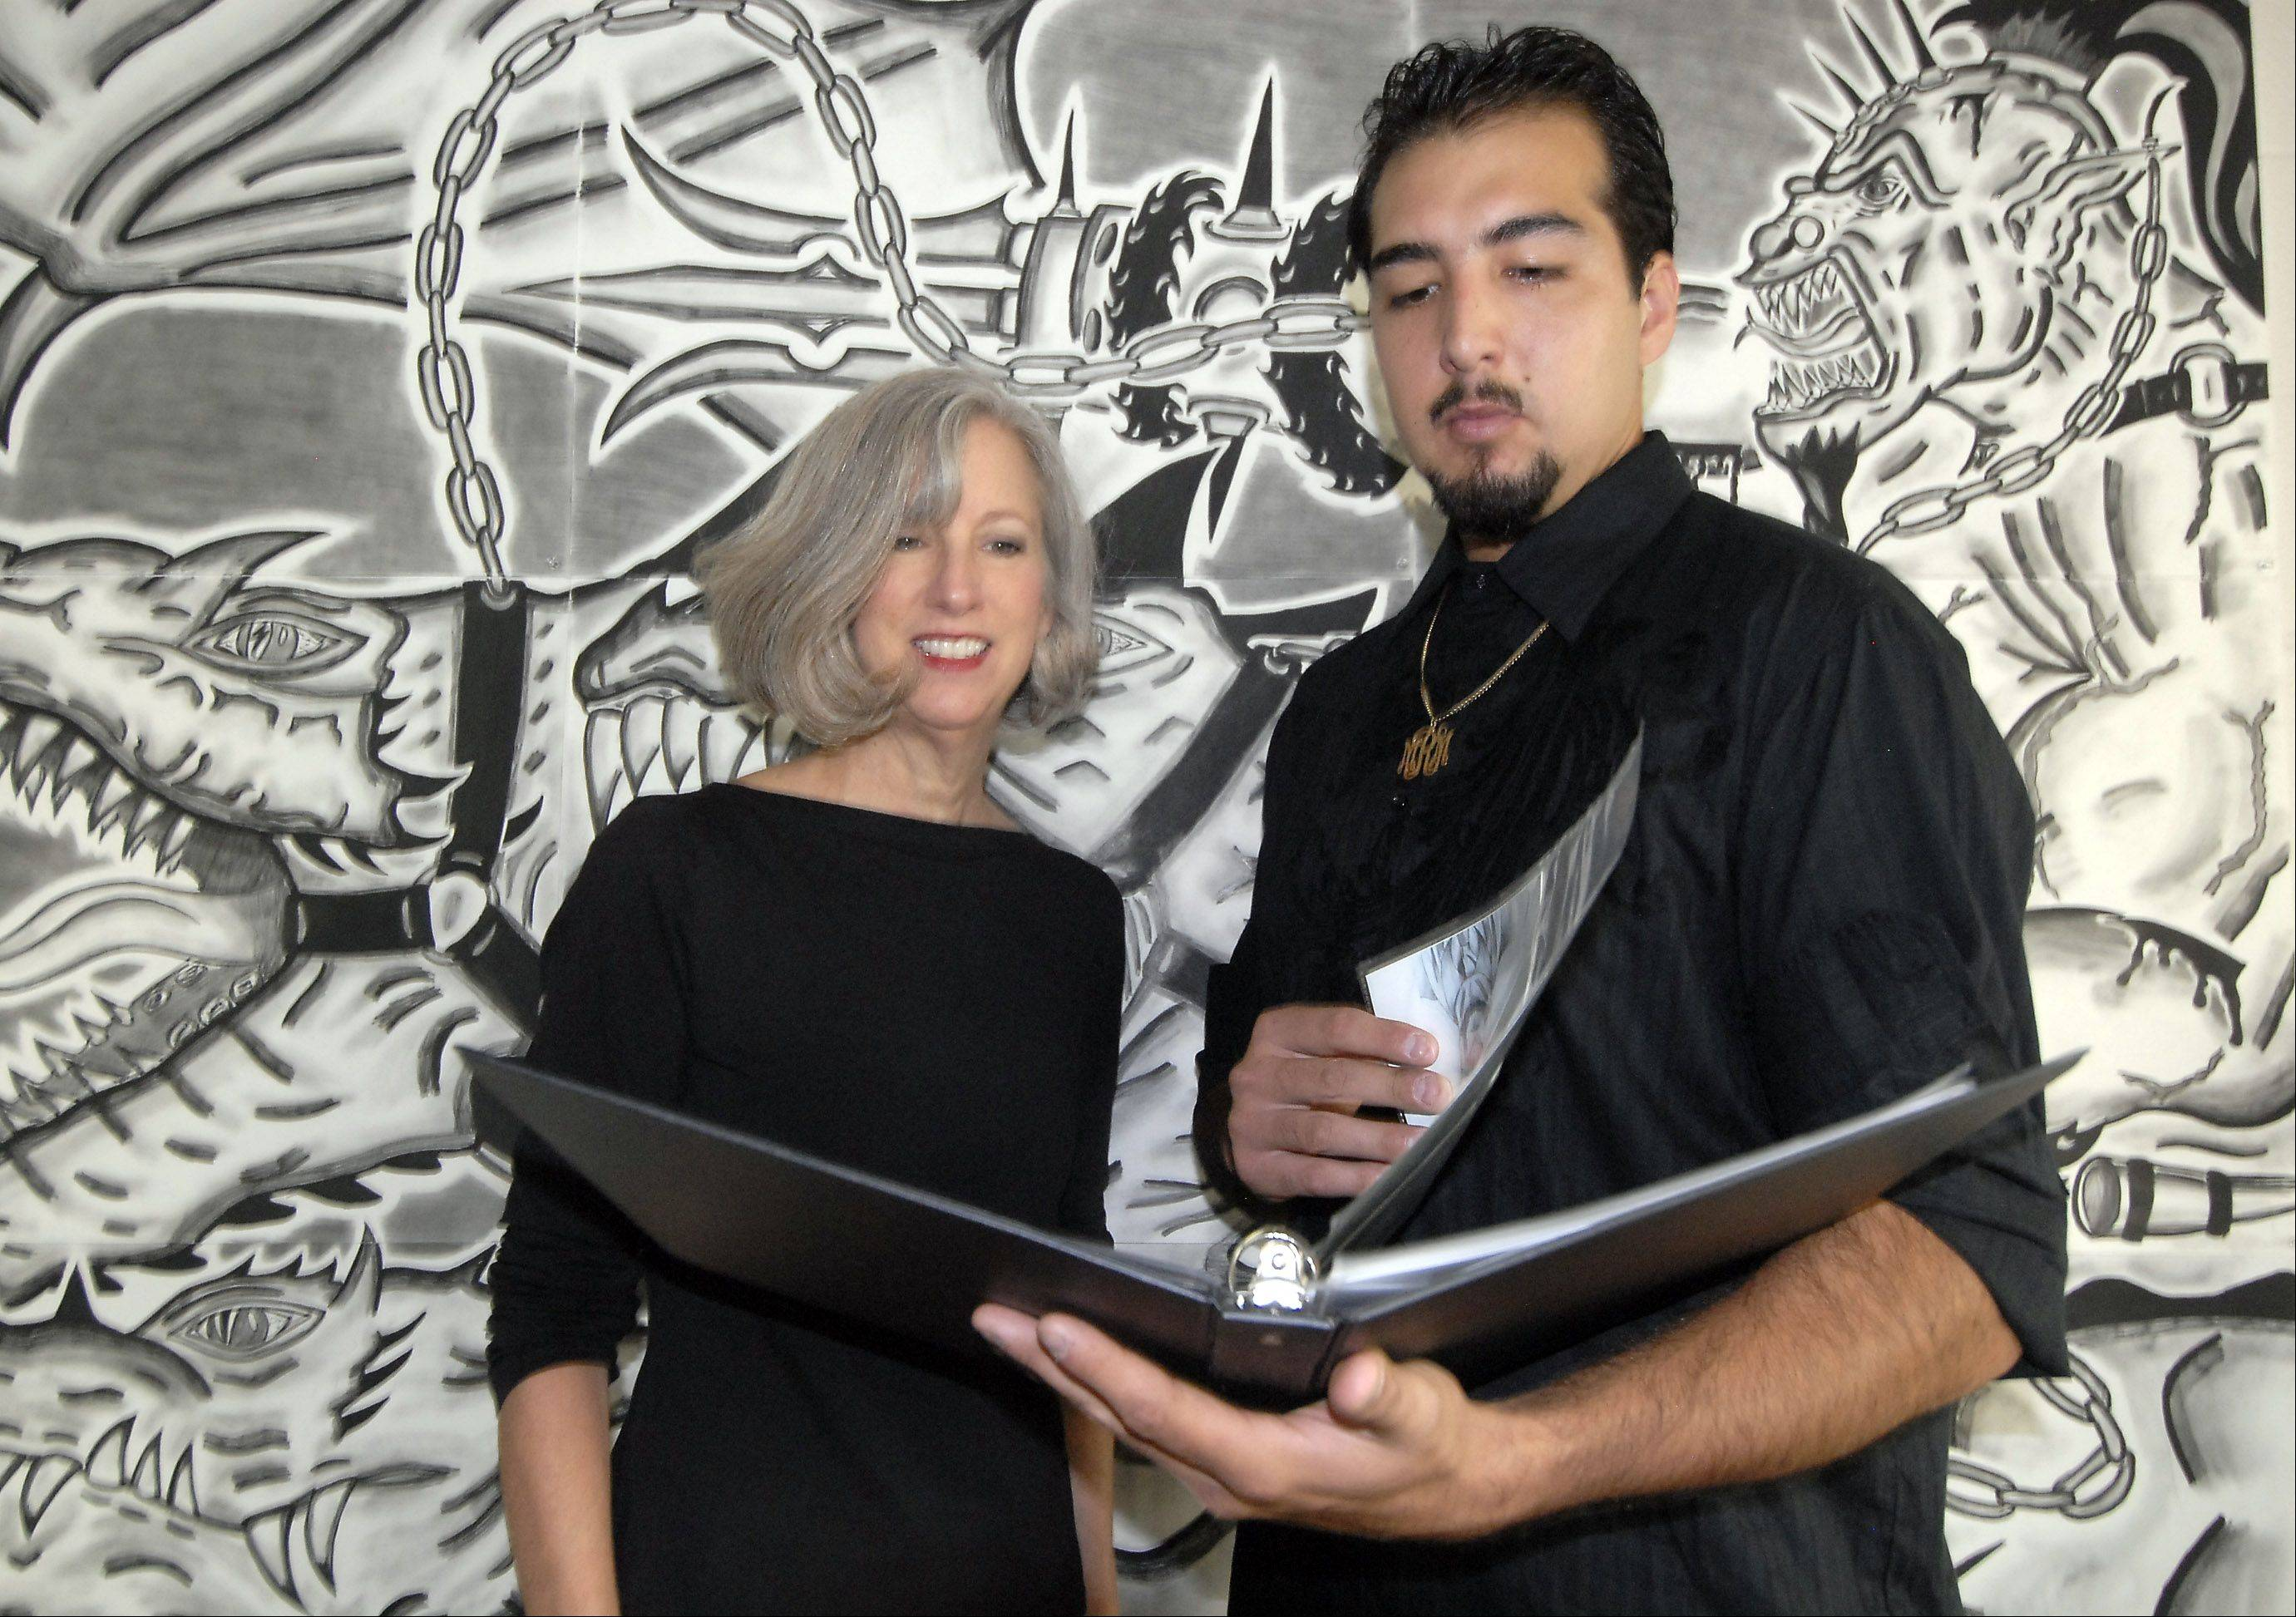 "When self-taught artist Raul Maldonado emptied a garbage bag full of his drawings onto the floor of the Hanover Park Park District Community Center in 2009, arts coordinator Susan Matthews recognized the intensity and talent in his work. Matthews is curator of Maldonado's latest exhibit at a Chicago museum for ""outsider"" art."